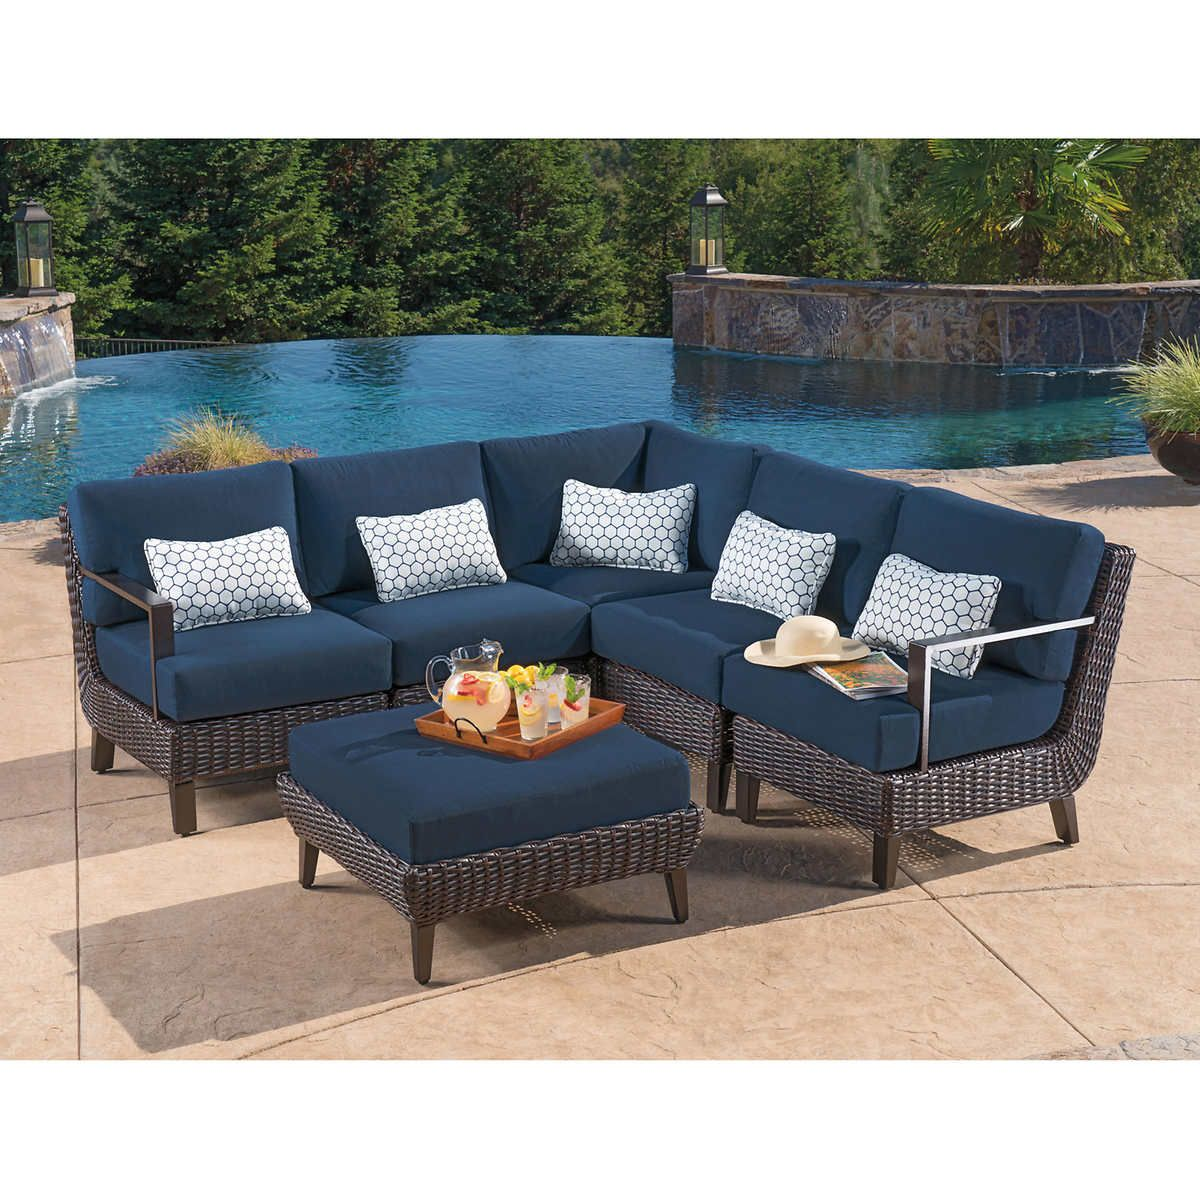 Costco 6 Piece Sectional 949 99 In Store Deep Seating Patio